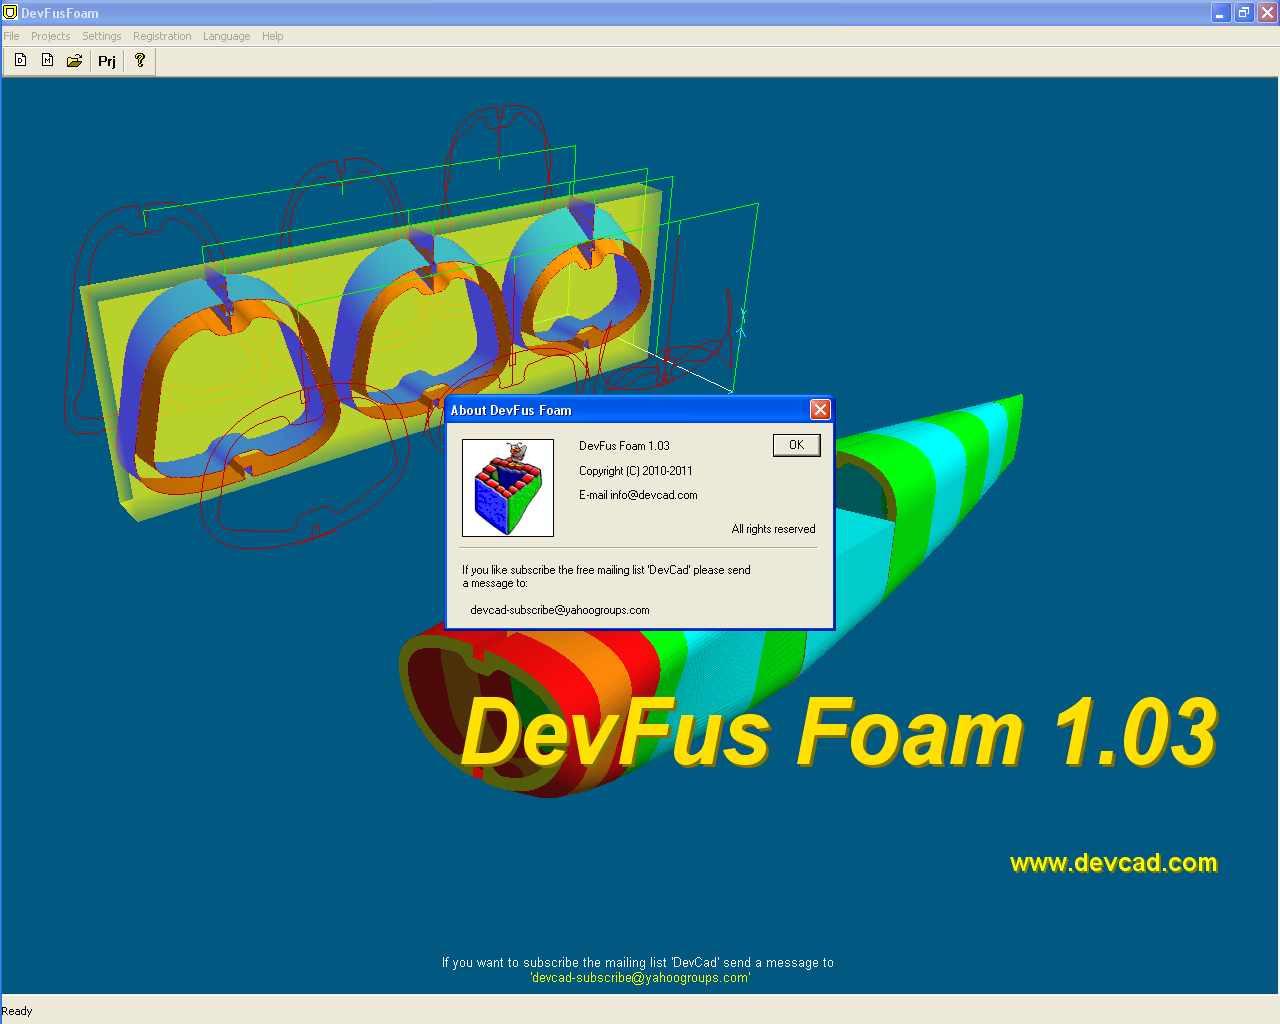 Working with devfus foam 1.03 full